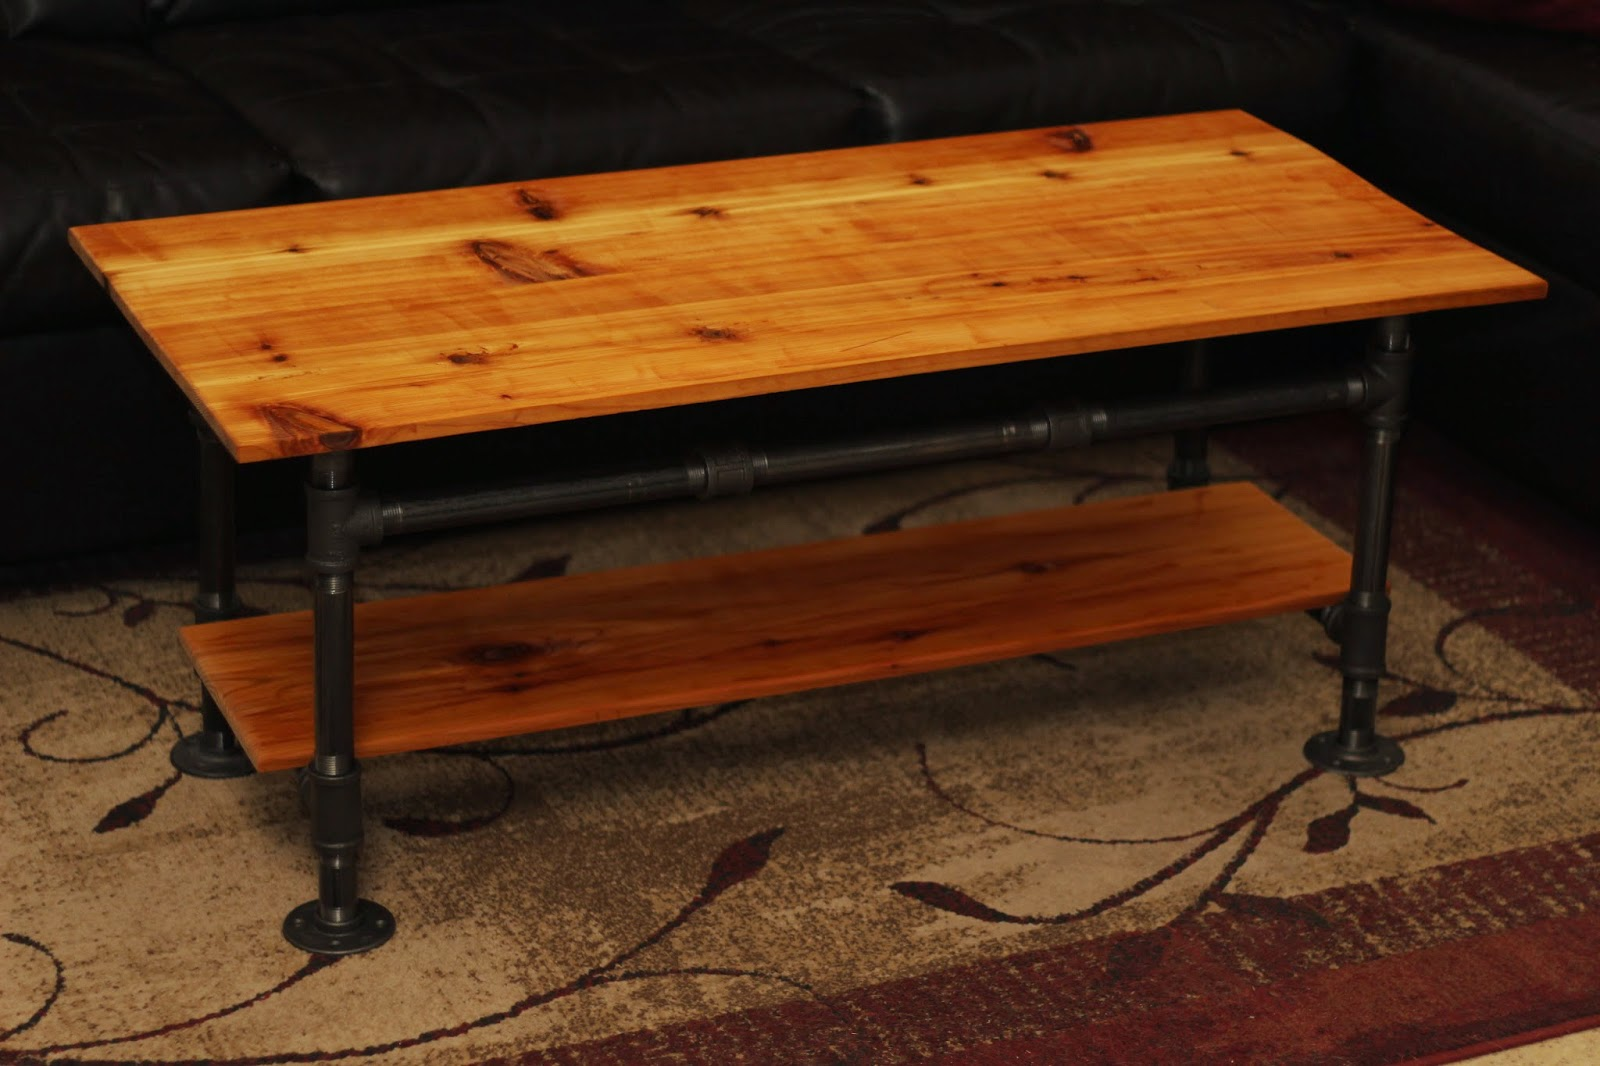 Rustic Diy Projects How To Red Cedar Steam Punk Coffee Table